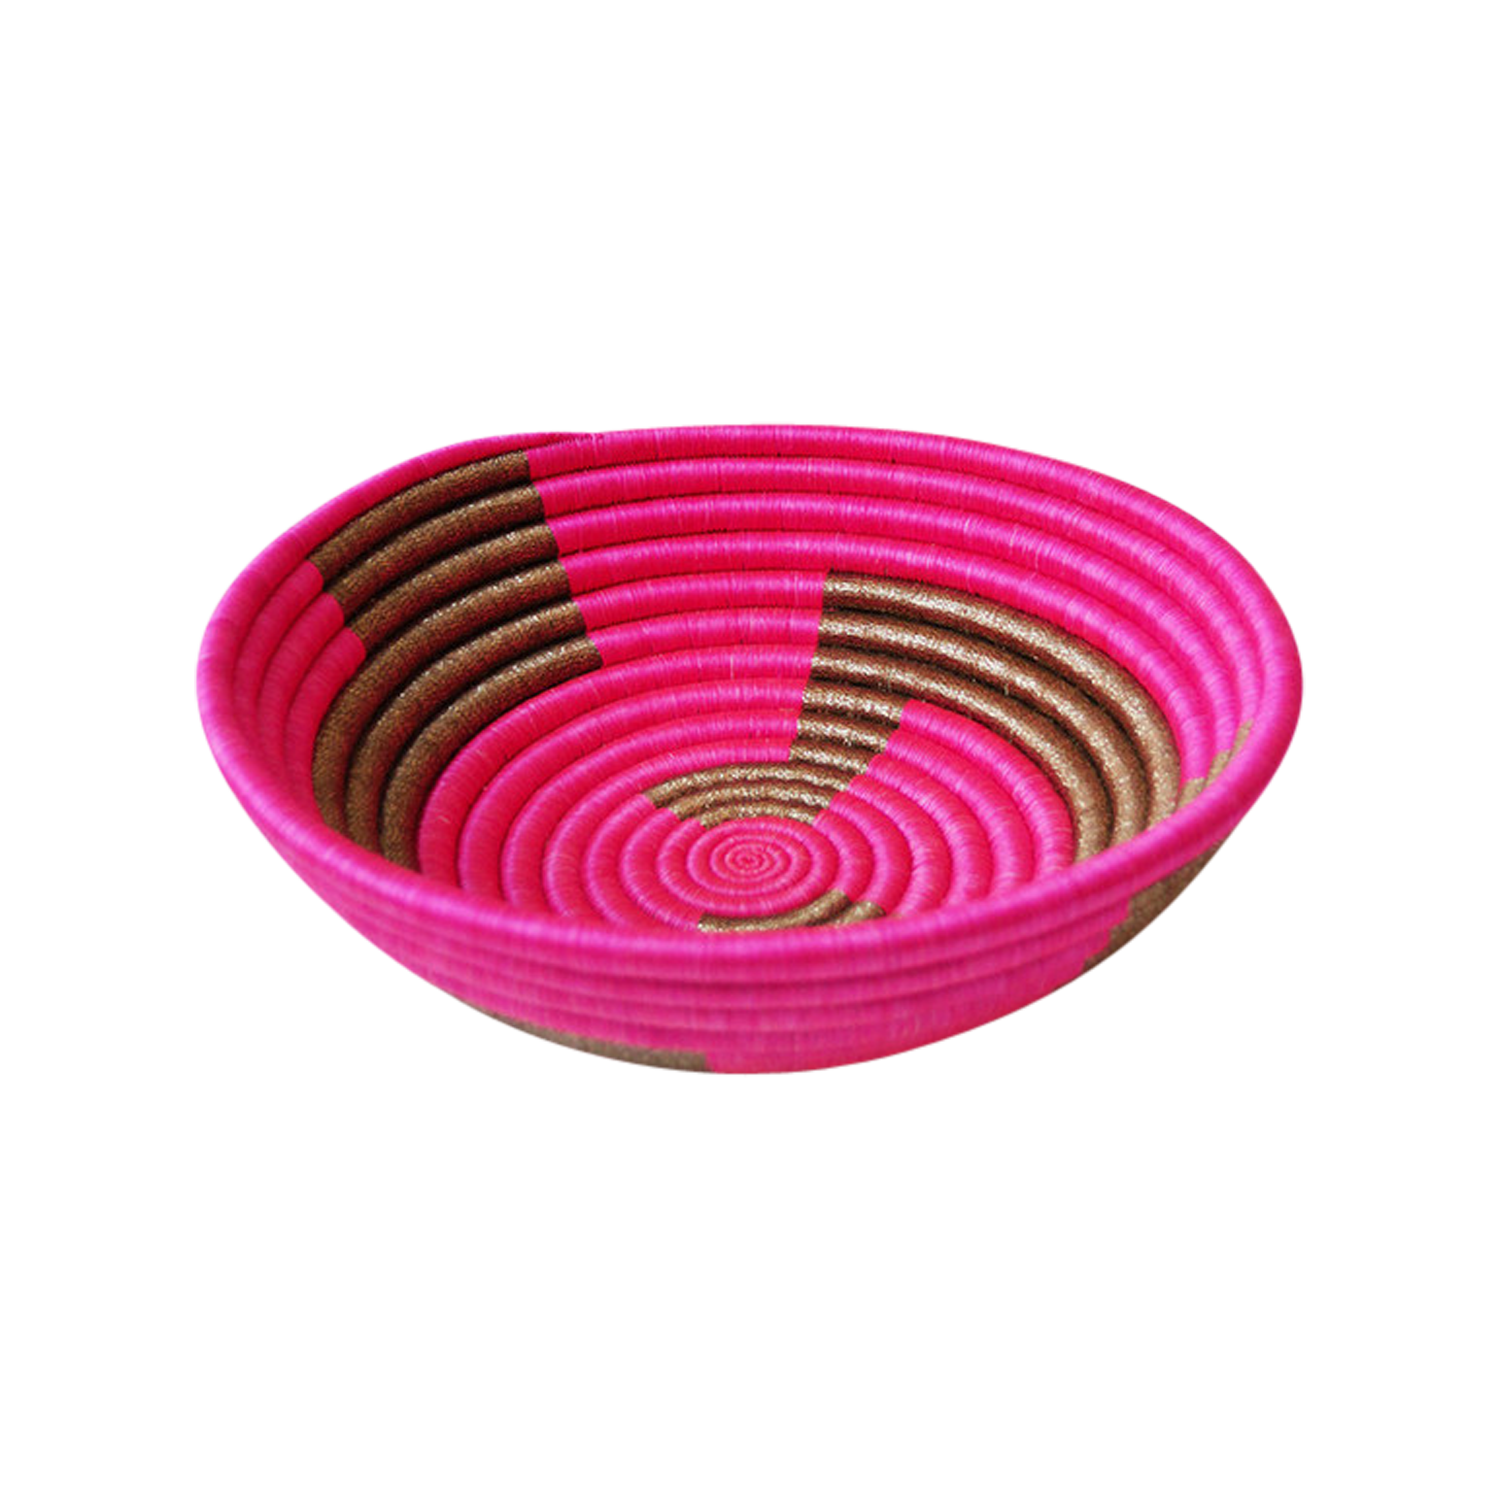 Pink and Gold Plateau Basket